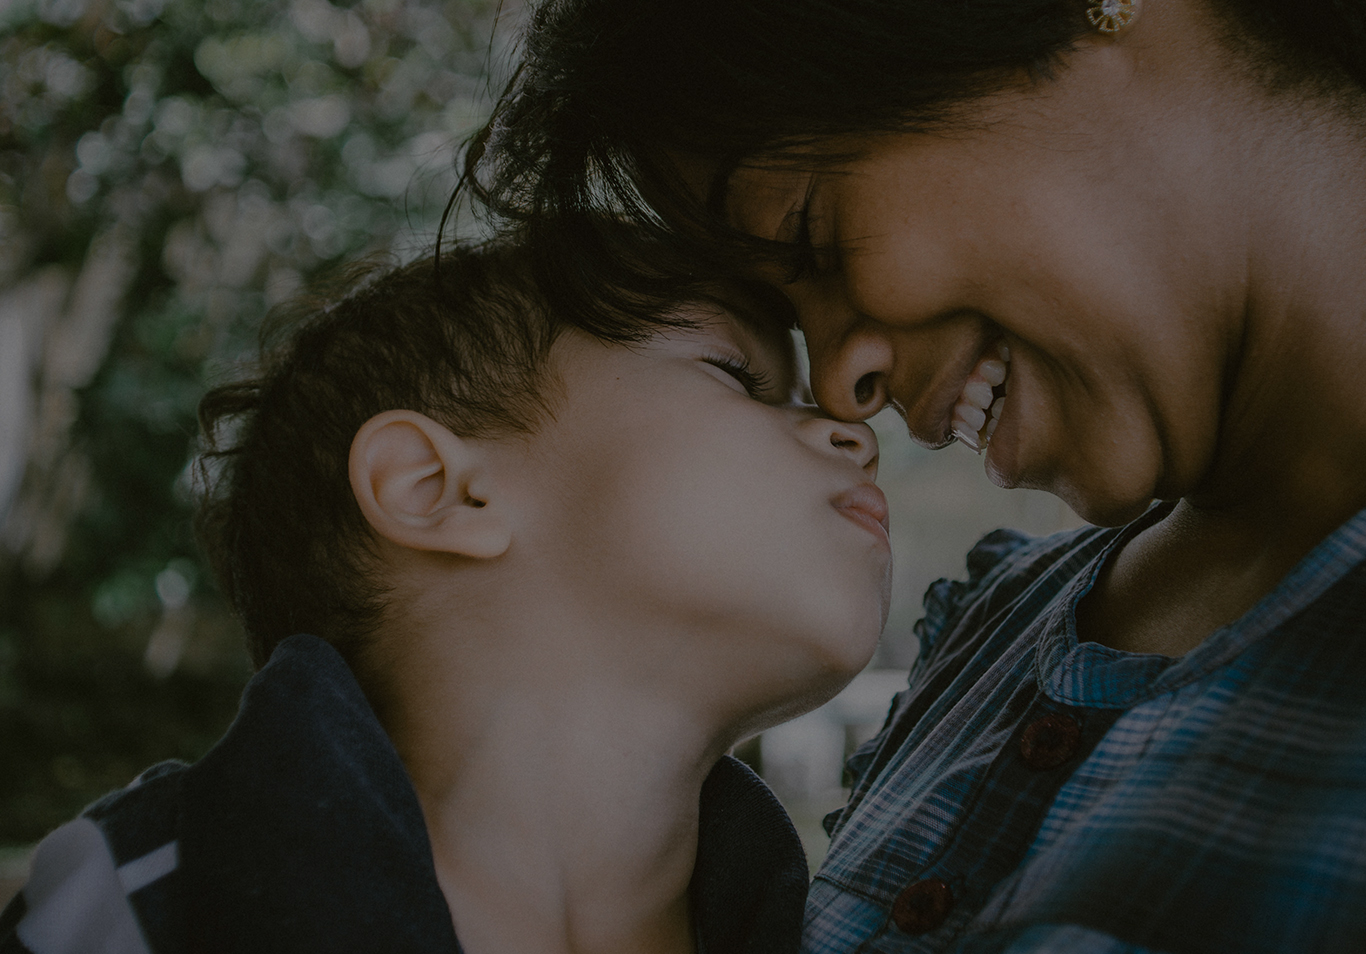 Close up of woman and child touching noses and smiling with closed eyes.